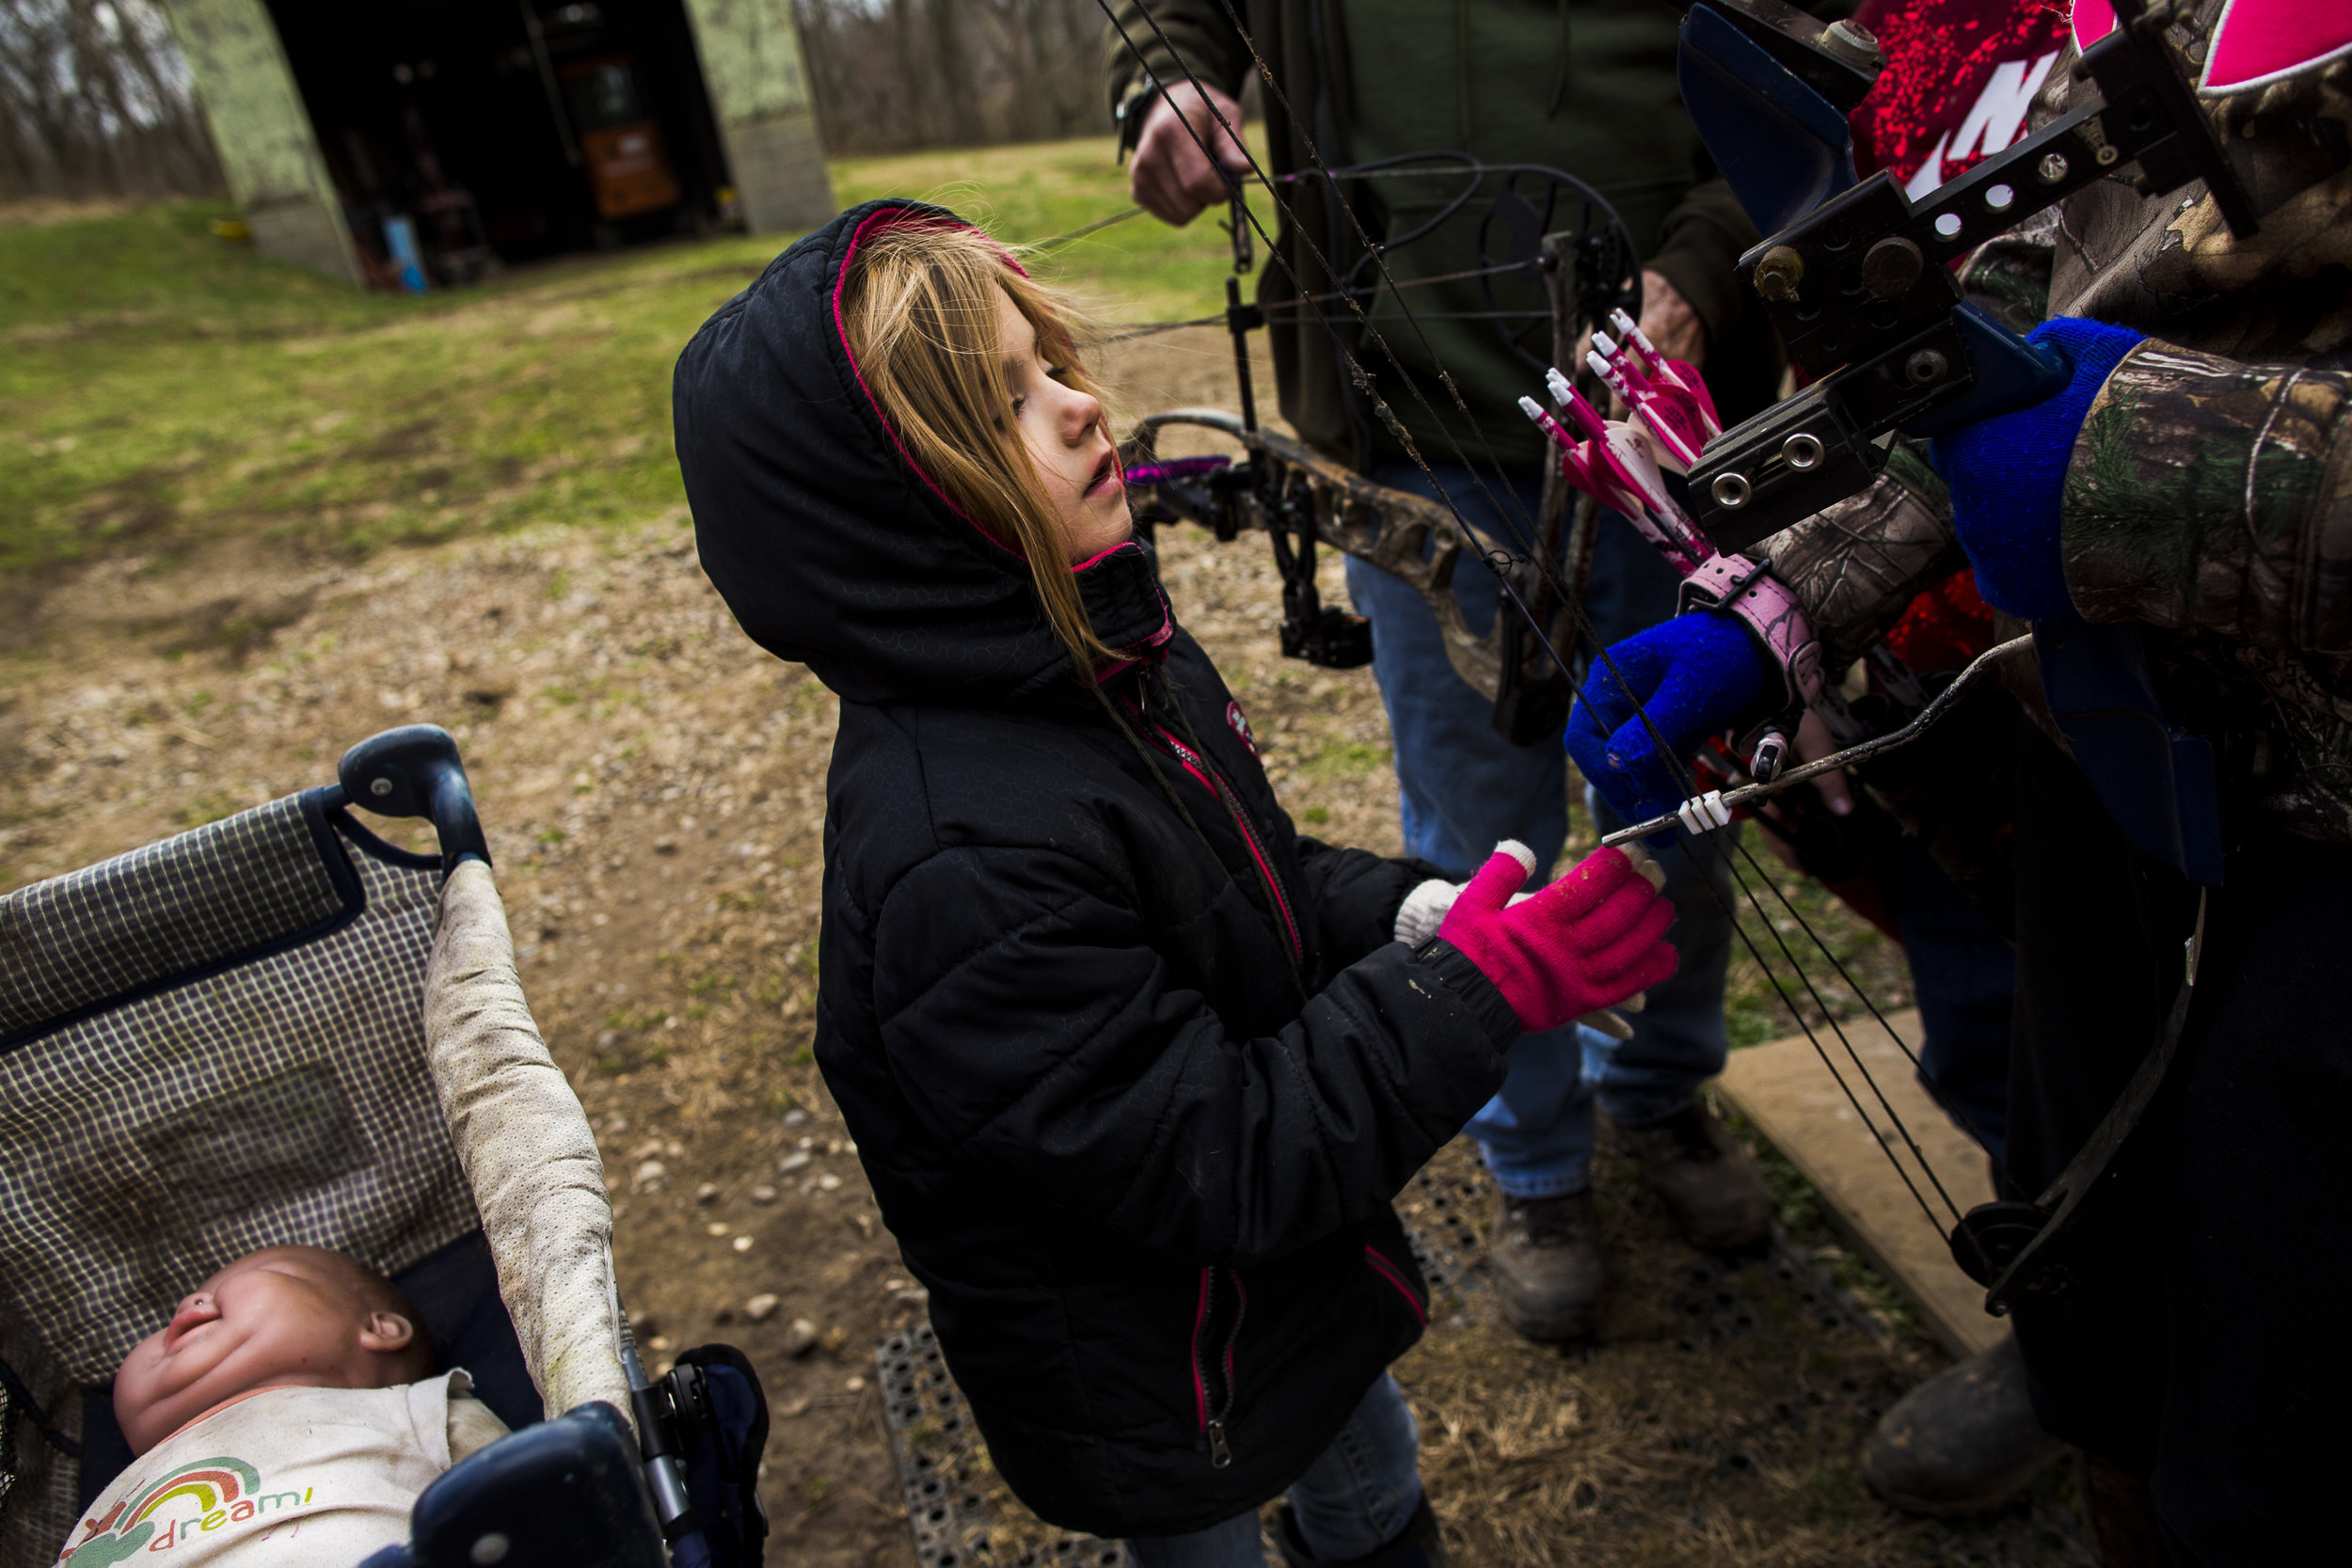 Emily takes a break from playing with baby doll to inspect her sisters's bow and arrows.